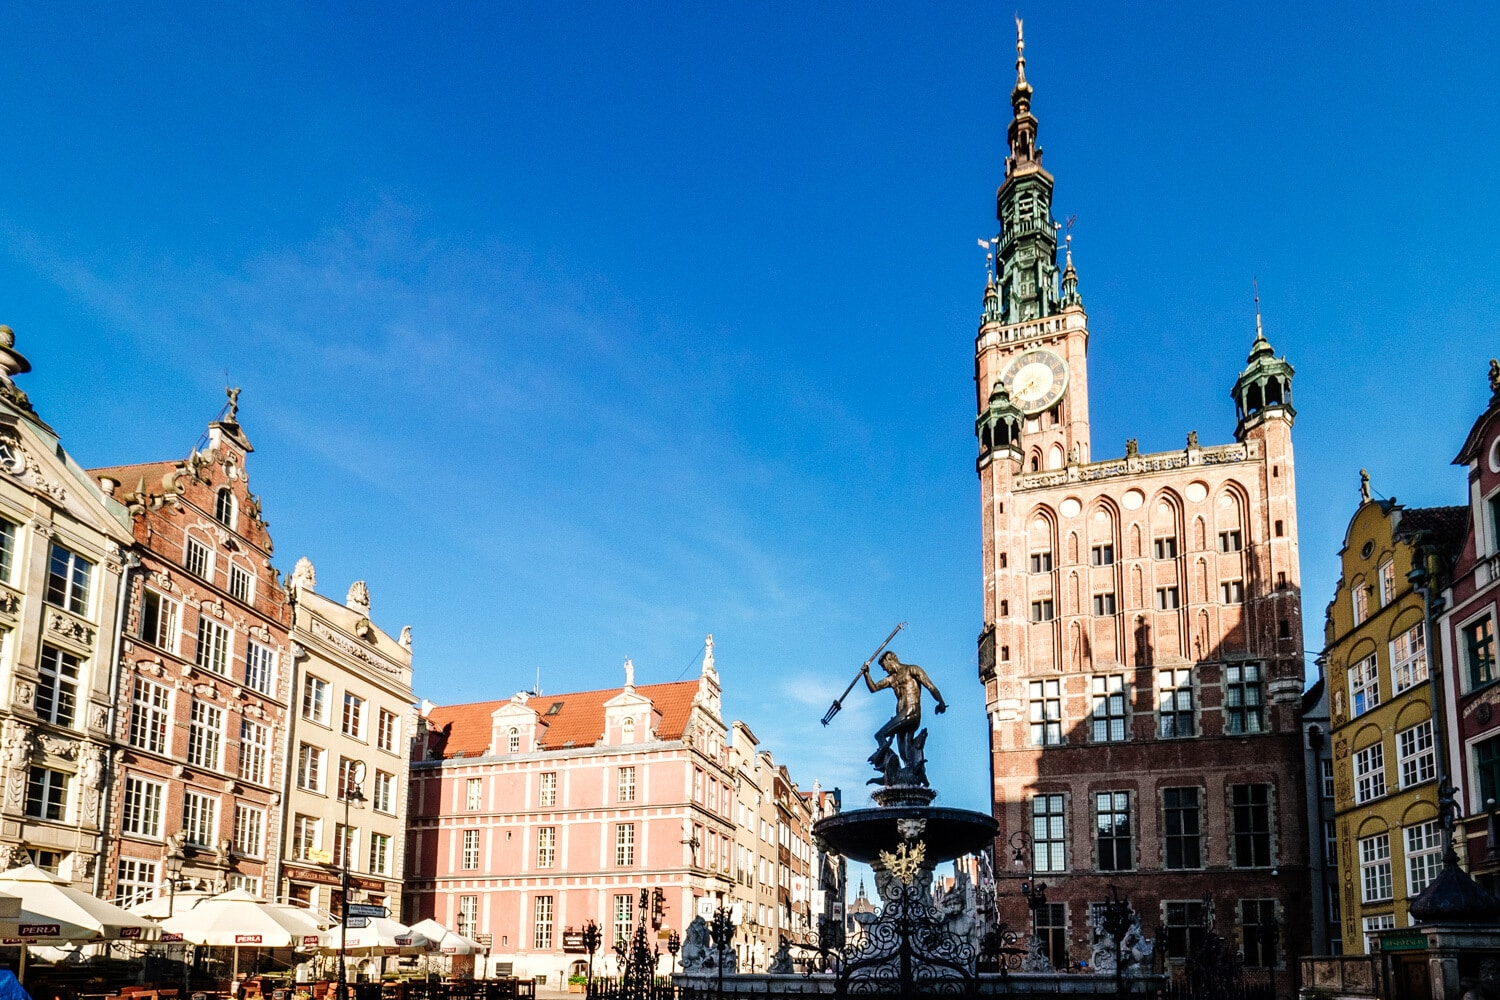 Gdansk Town Hall and Fountain of Neptune on Dlugi Targ or Long Market.